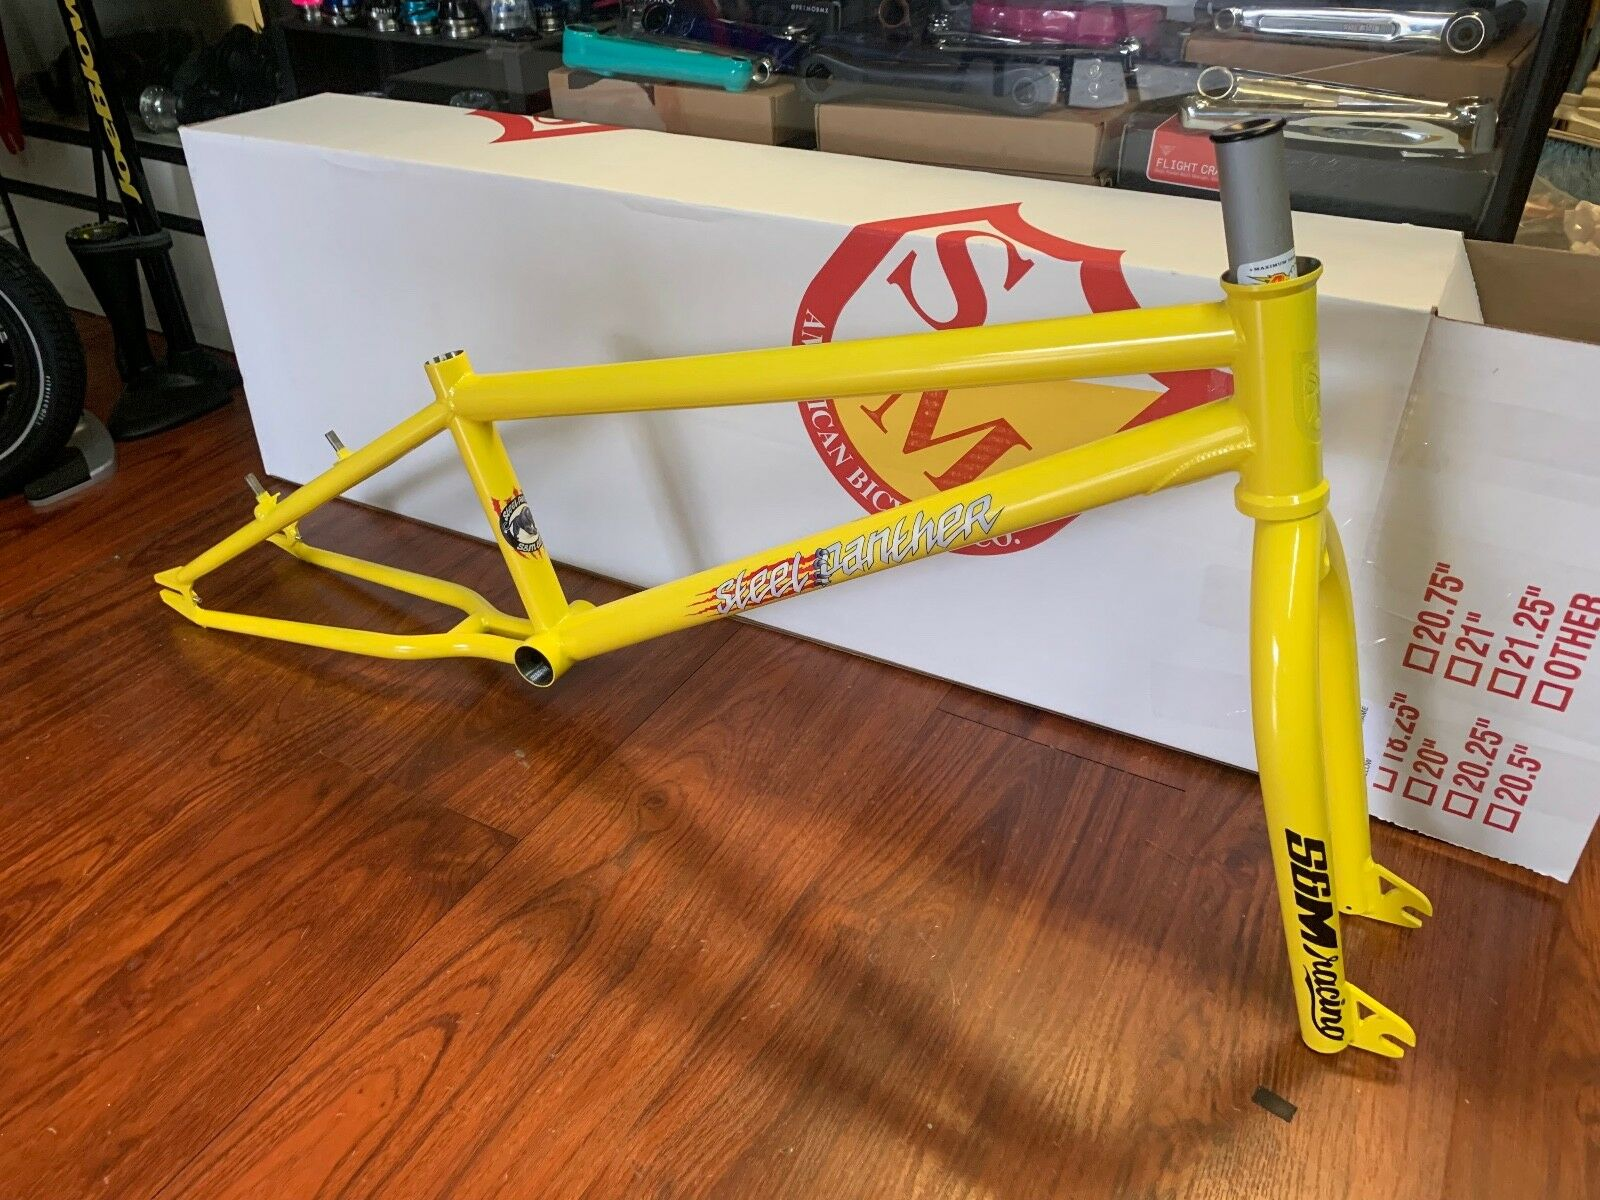 S&M BIKES STEEL PANTHER RACE FRAME giallo 21 FORK KIT BMX 20 BIKE 21 RACING